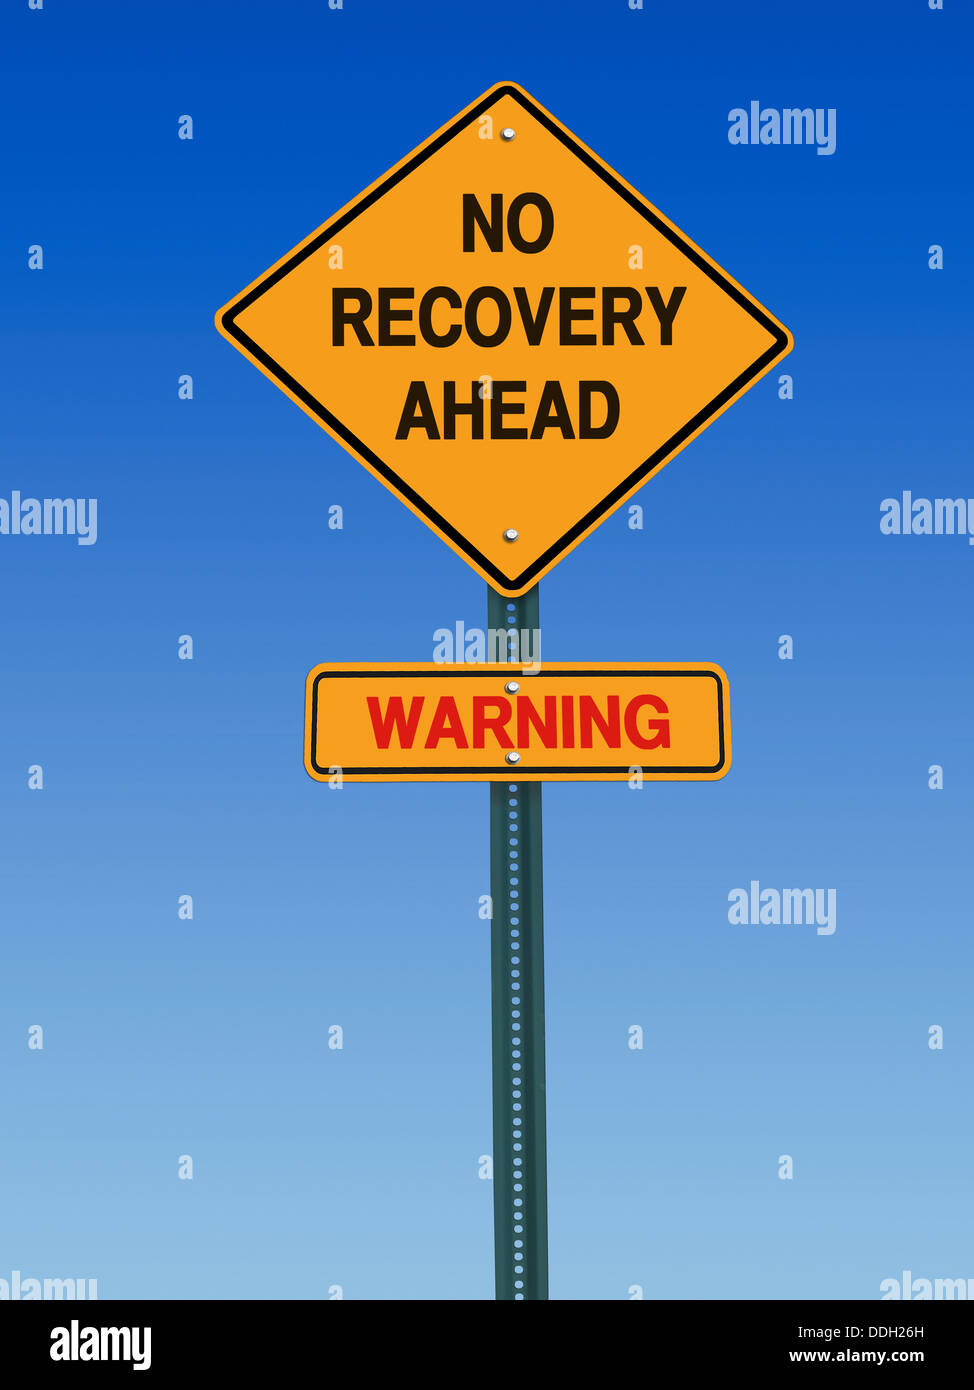 conceptual sign no recovery ahead warning over blue sky - Stock Image